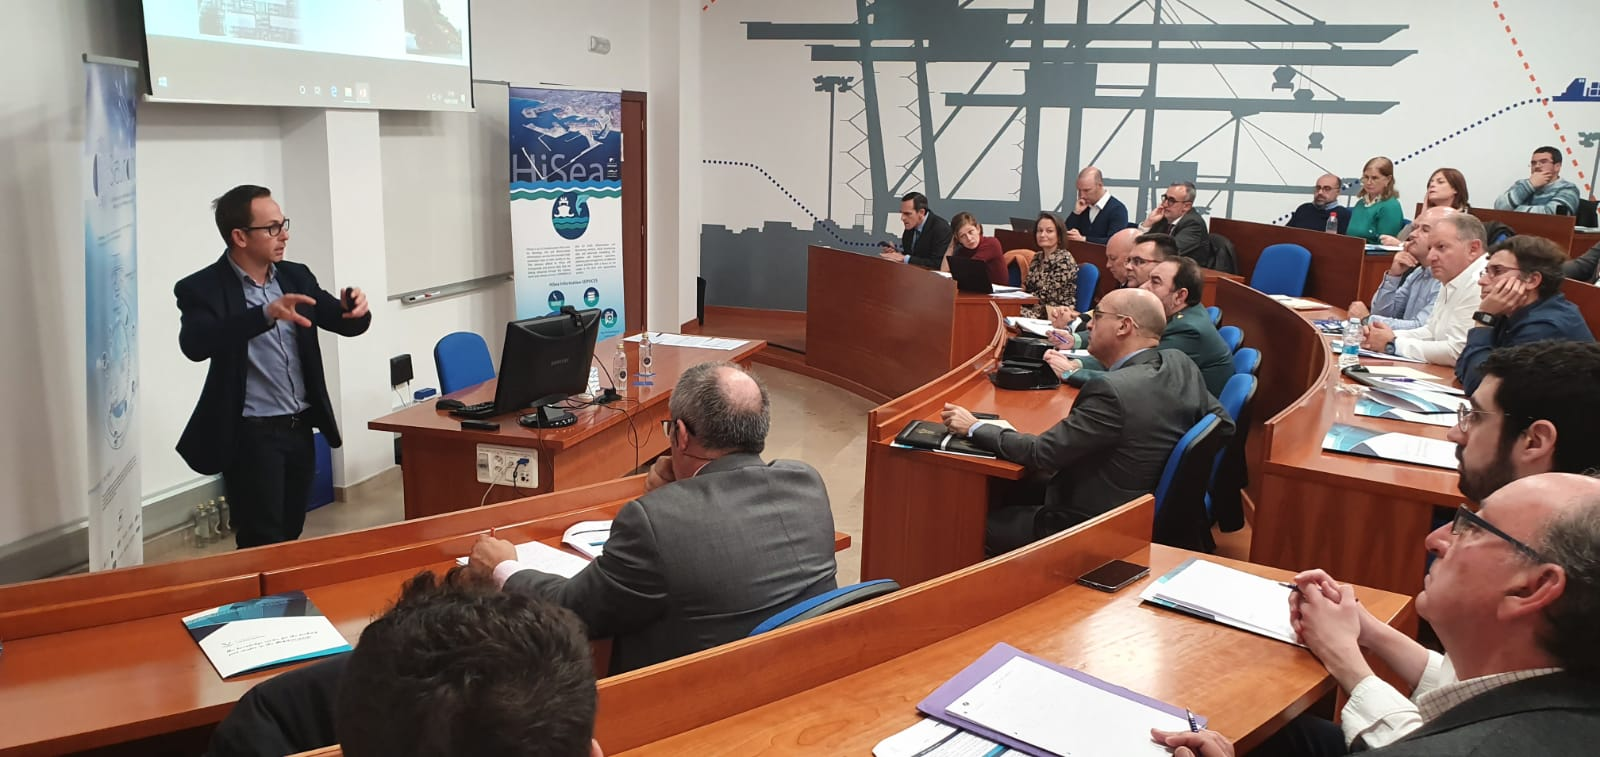 HiSea project featured in Valencia maritime surveillance conference